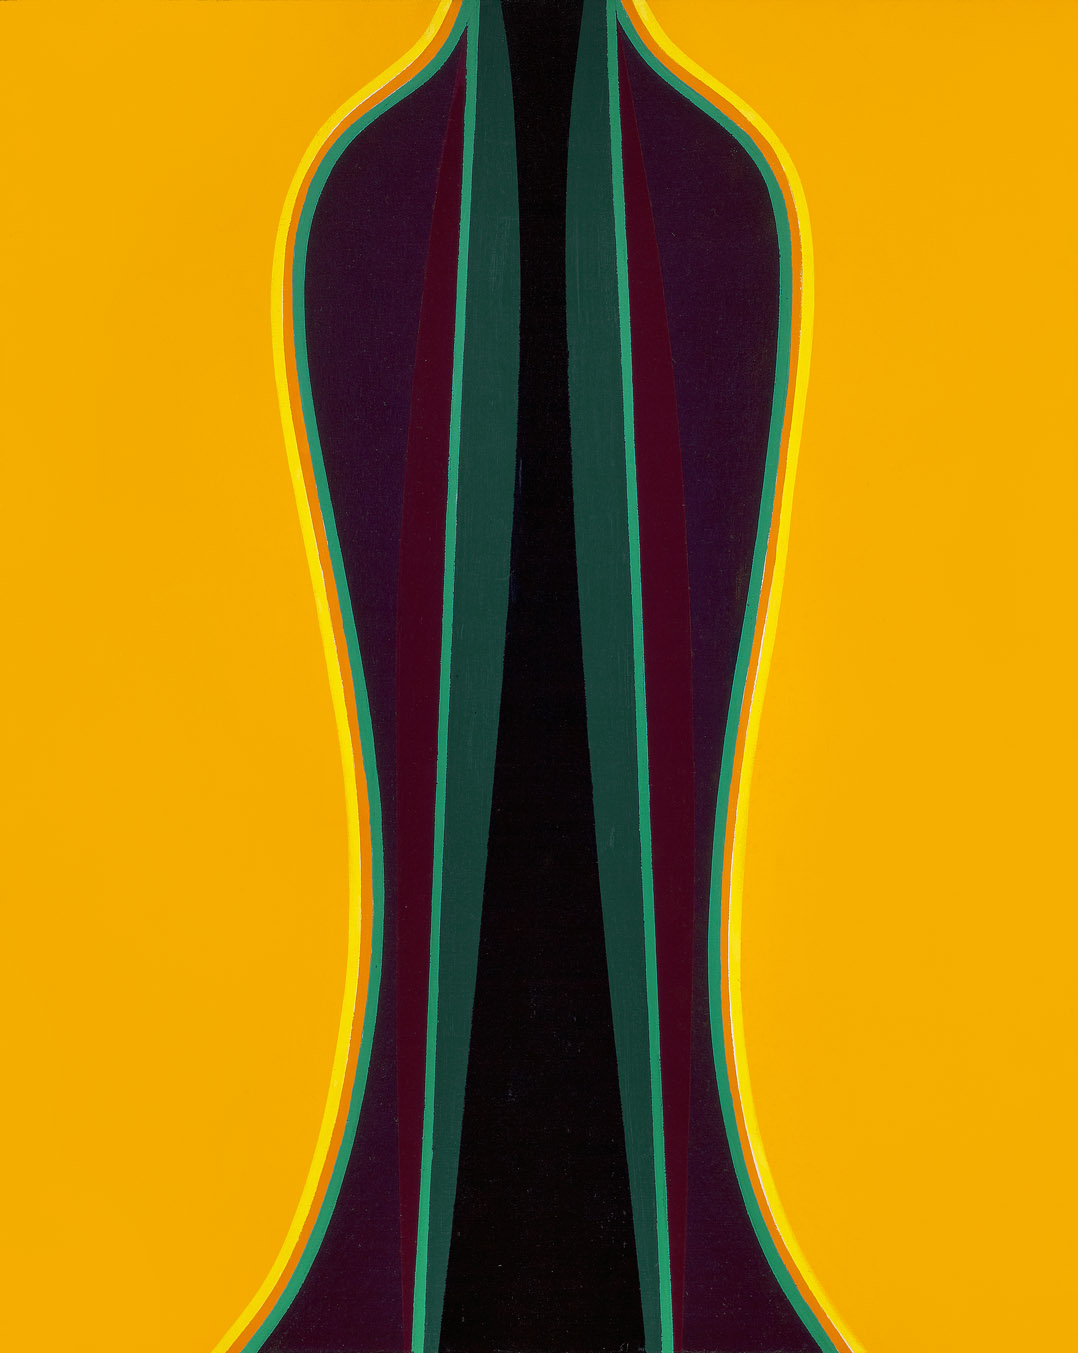 Archimage II , 1976  acrylic on canvas board 30 x 24 inches; 76.2 x 61 centimeters